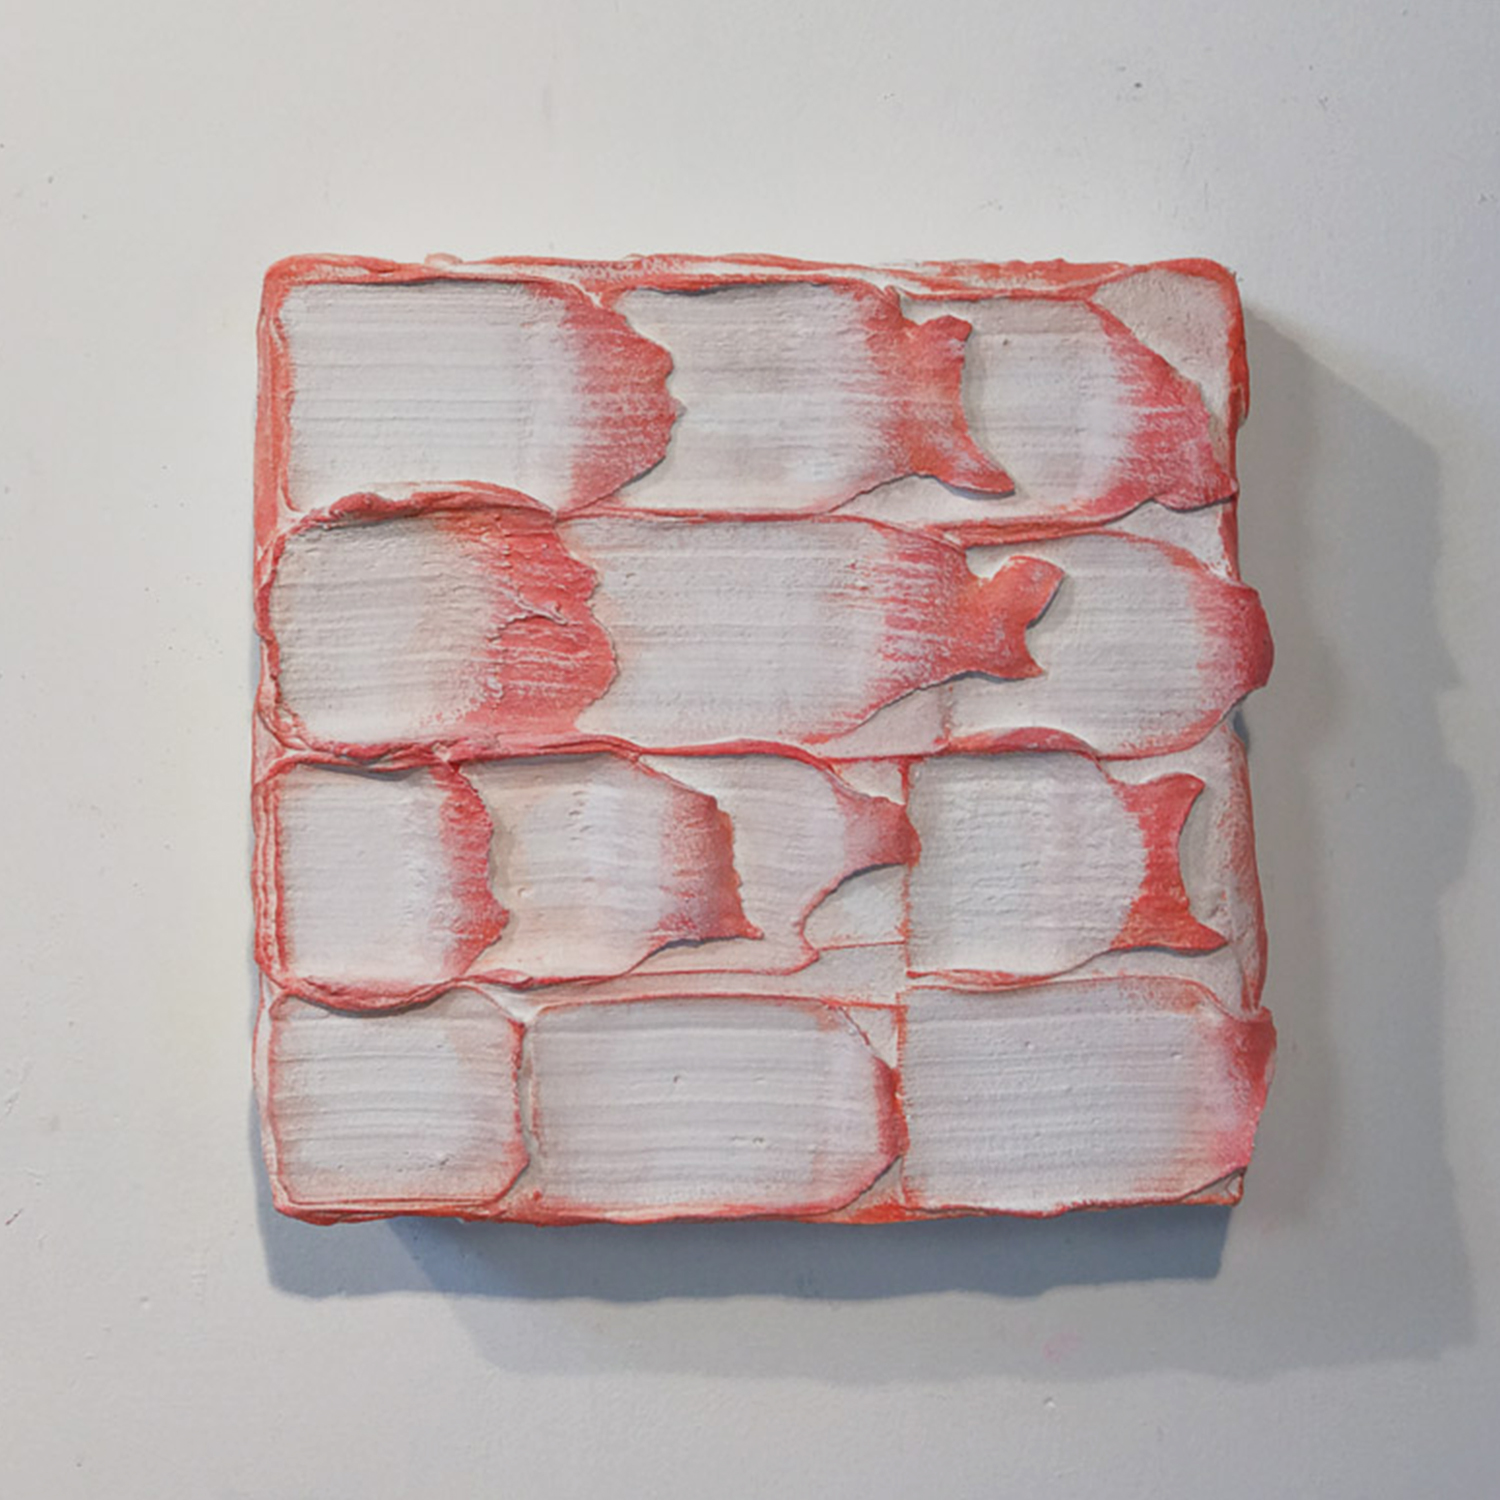 15 Red, White, Red  Mixed media 17 x 17 x 5 inches 43 x 43 x 12 2018